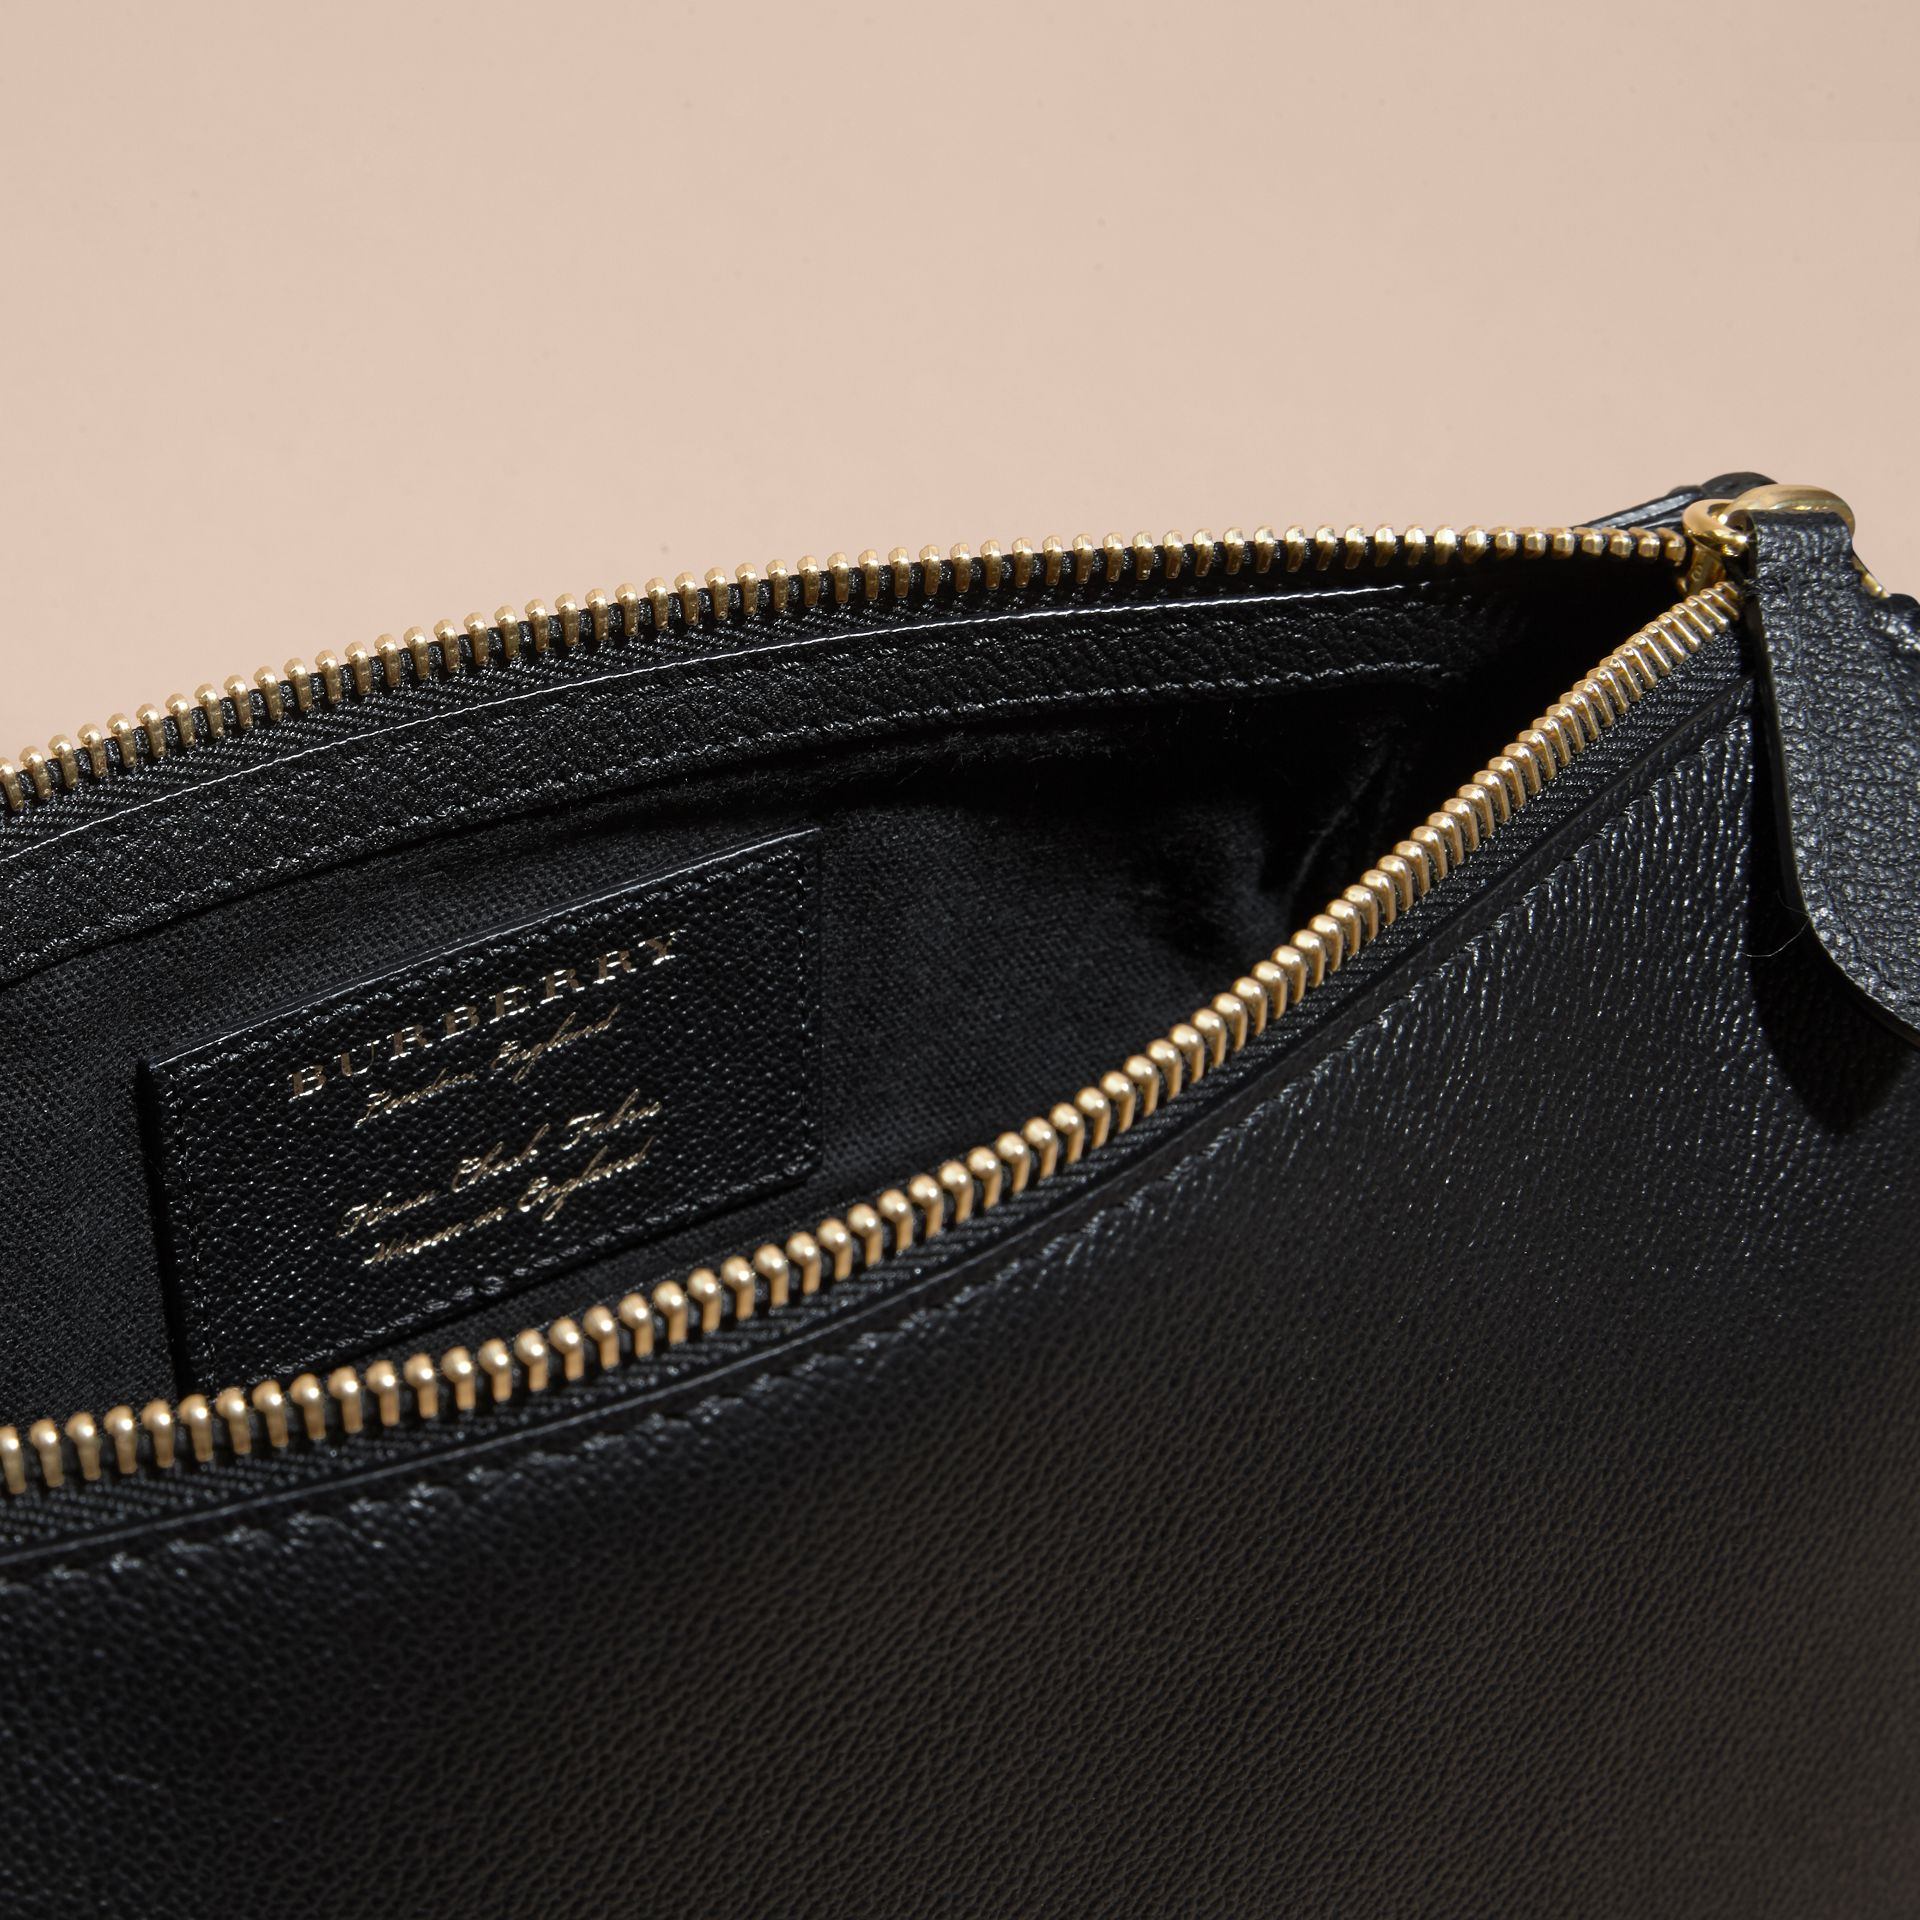 Buckle Detail Leather and House Check Crossbody Bag in Black - Women | Burberry Canada - gallery image 5